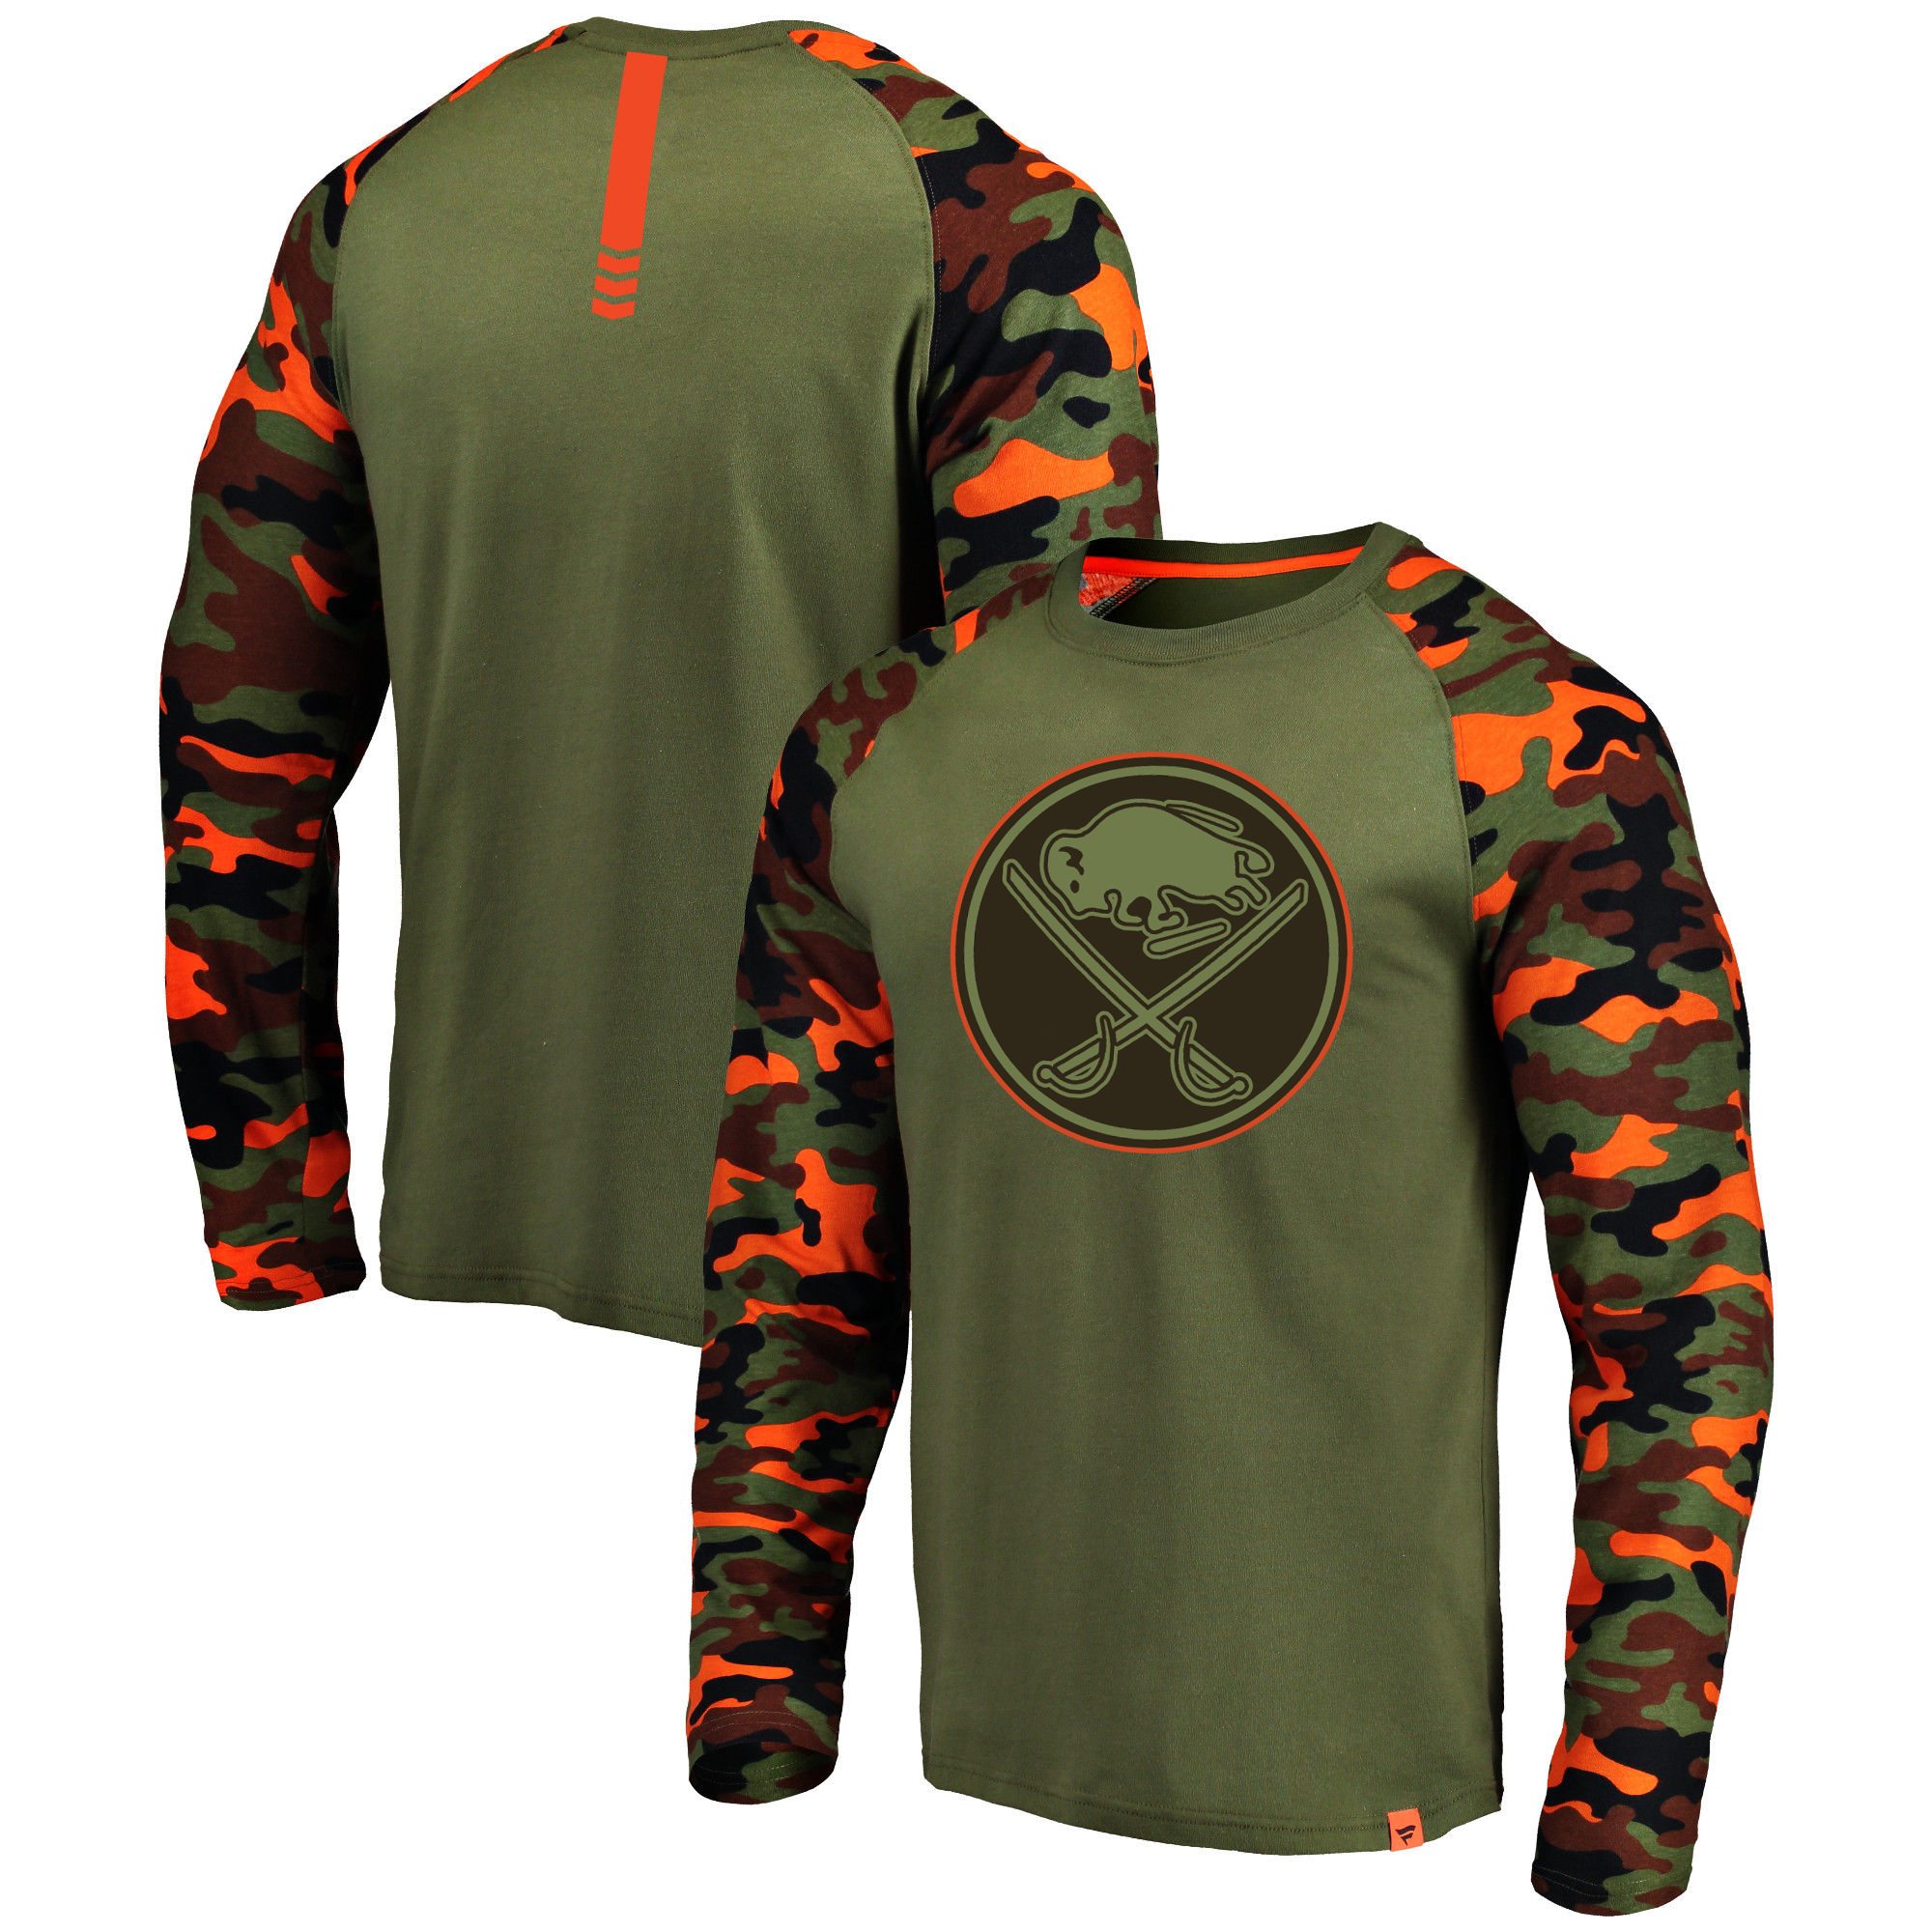 Buffalo Sabres Fanatics Branded Olive/Camo Recon Long Sleeve Raglan T-Shirt